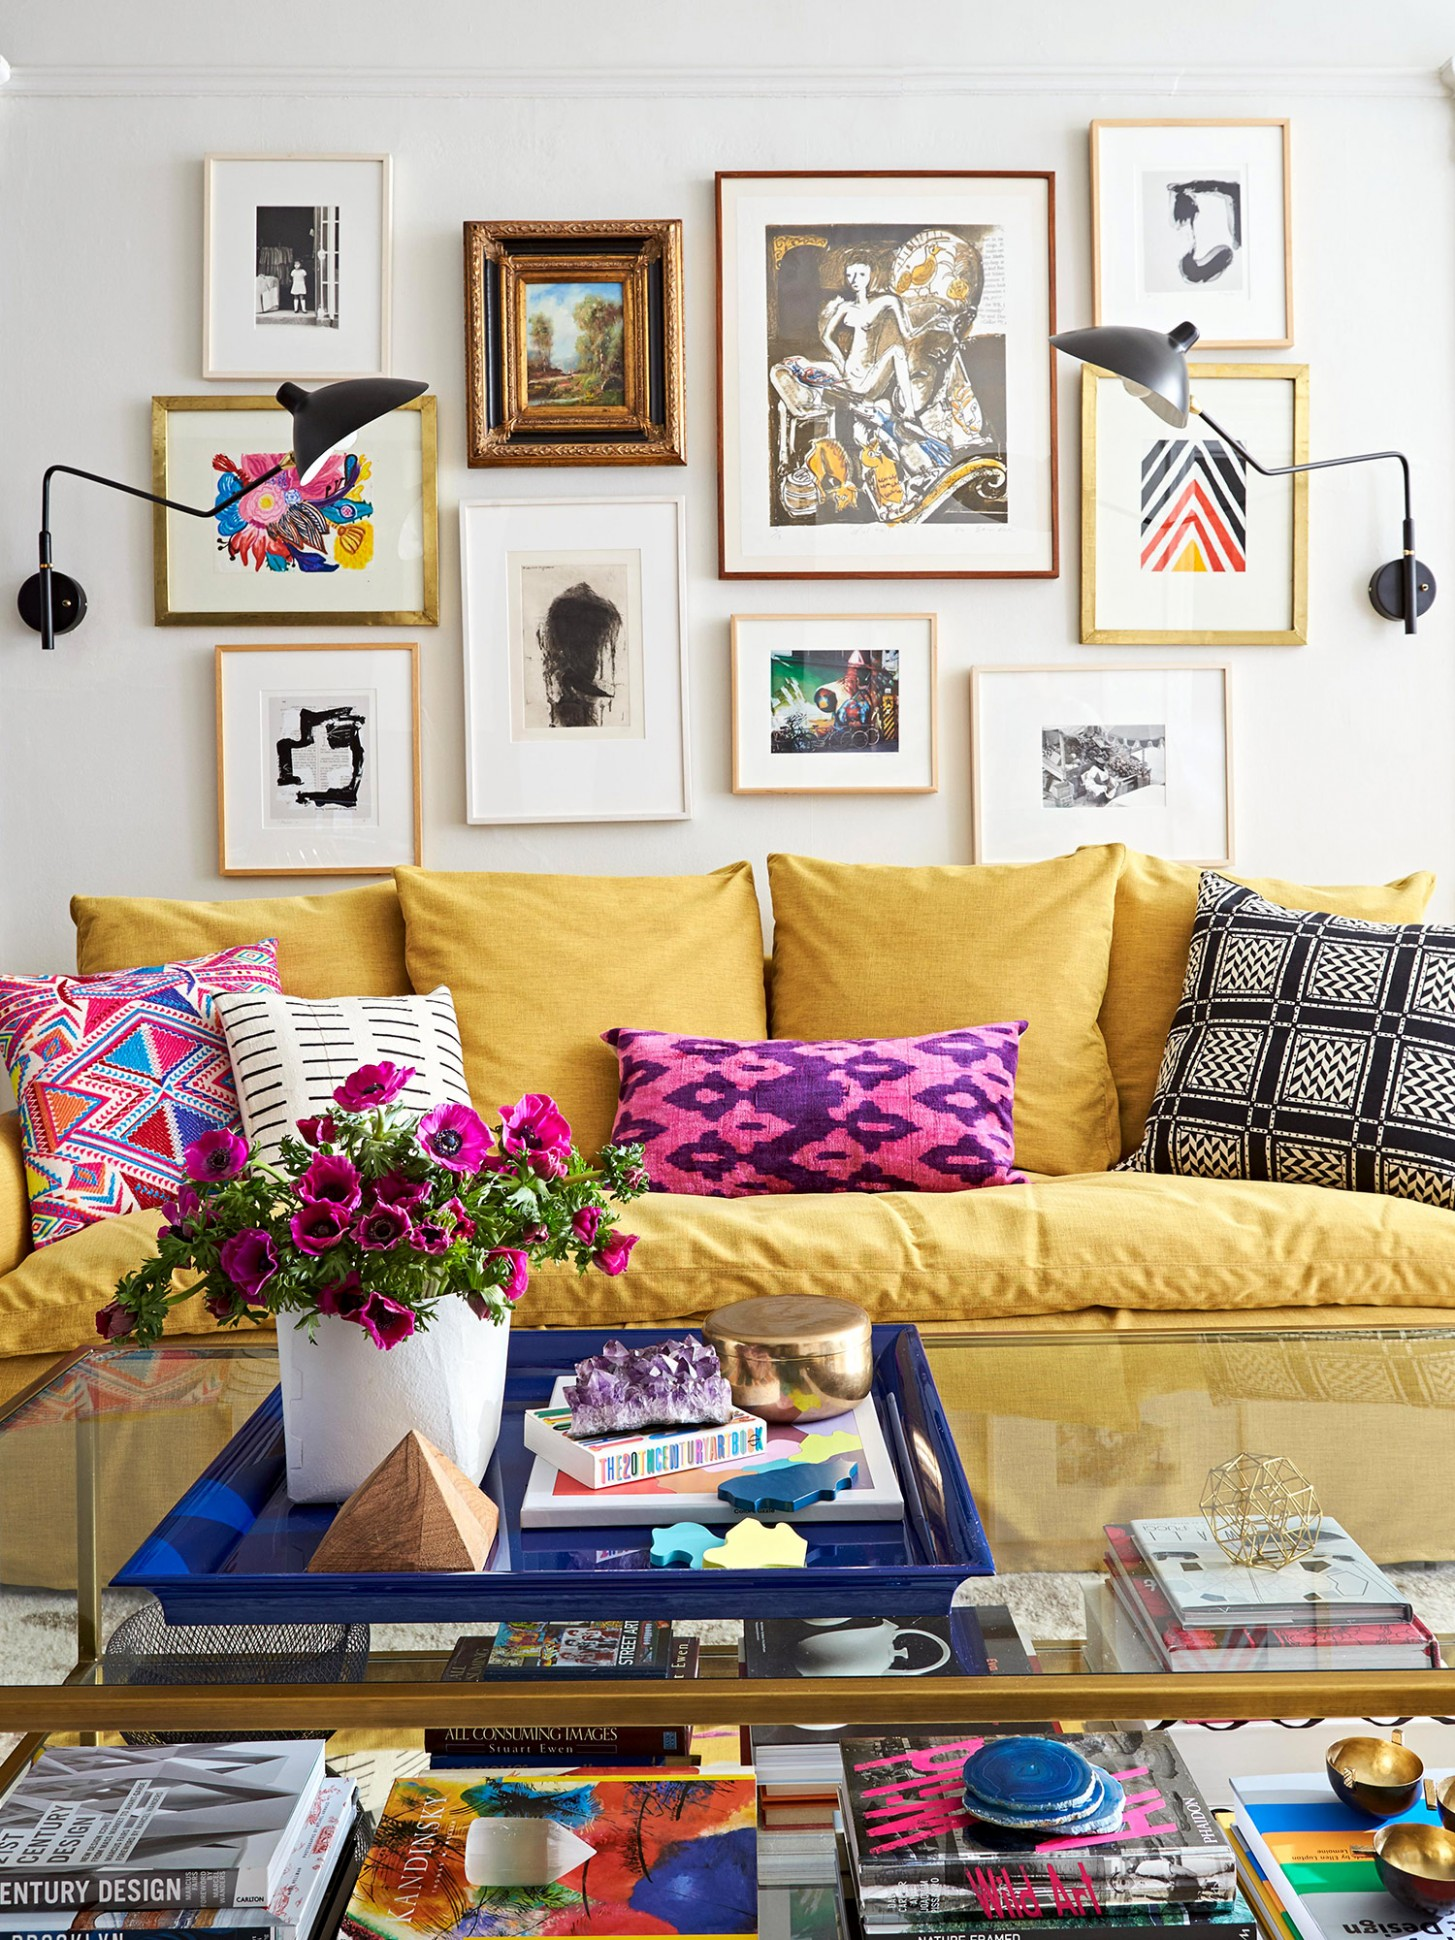 12 Apartment Decorating Ideas to Make Your Rental Feel Like Home  - Apartment Decorating Ideas Article